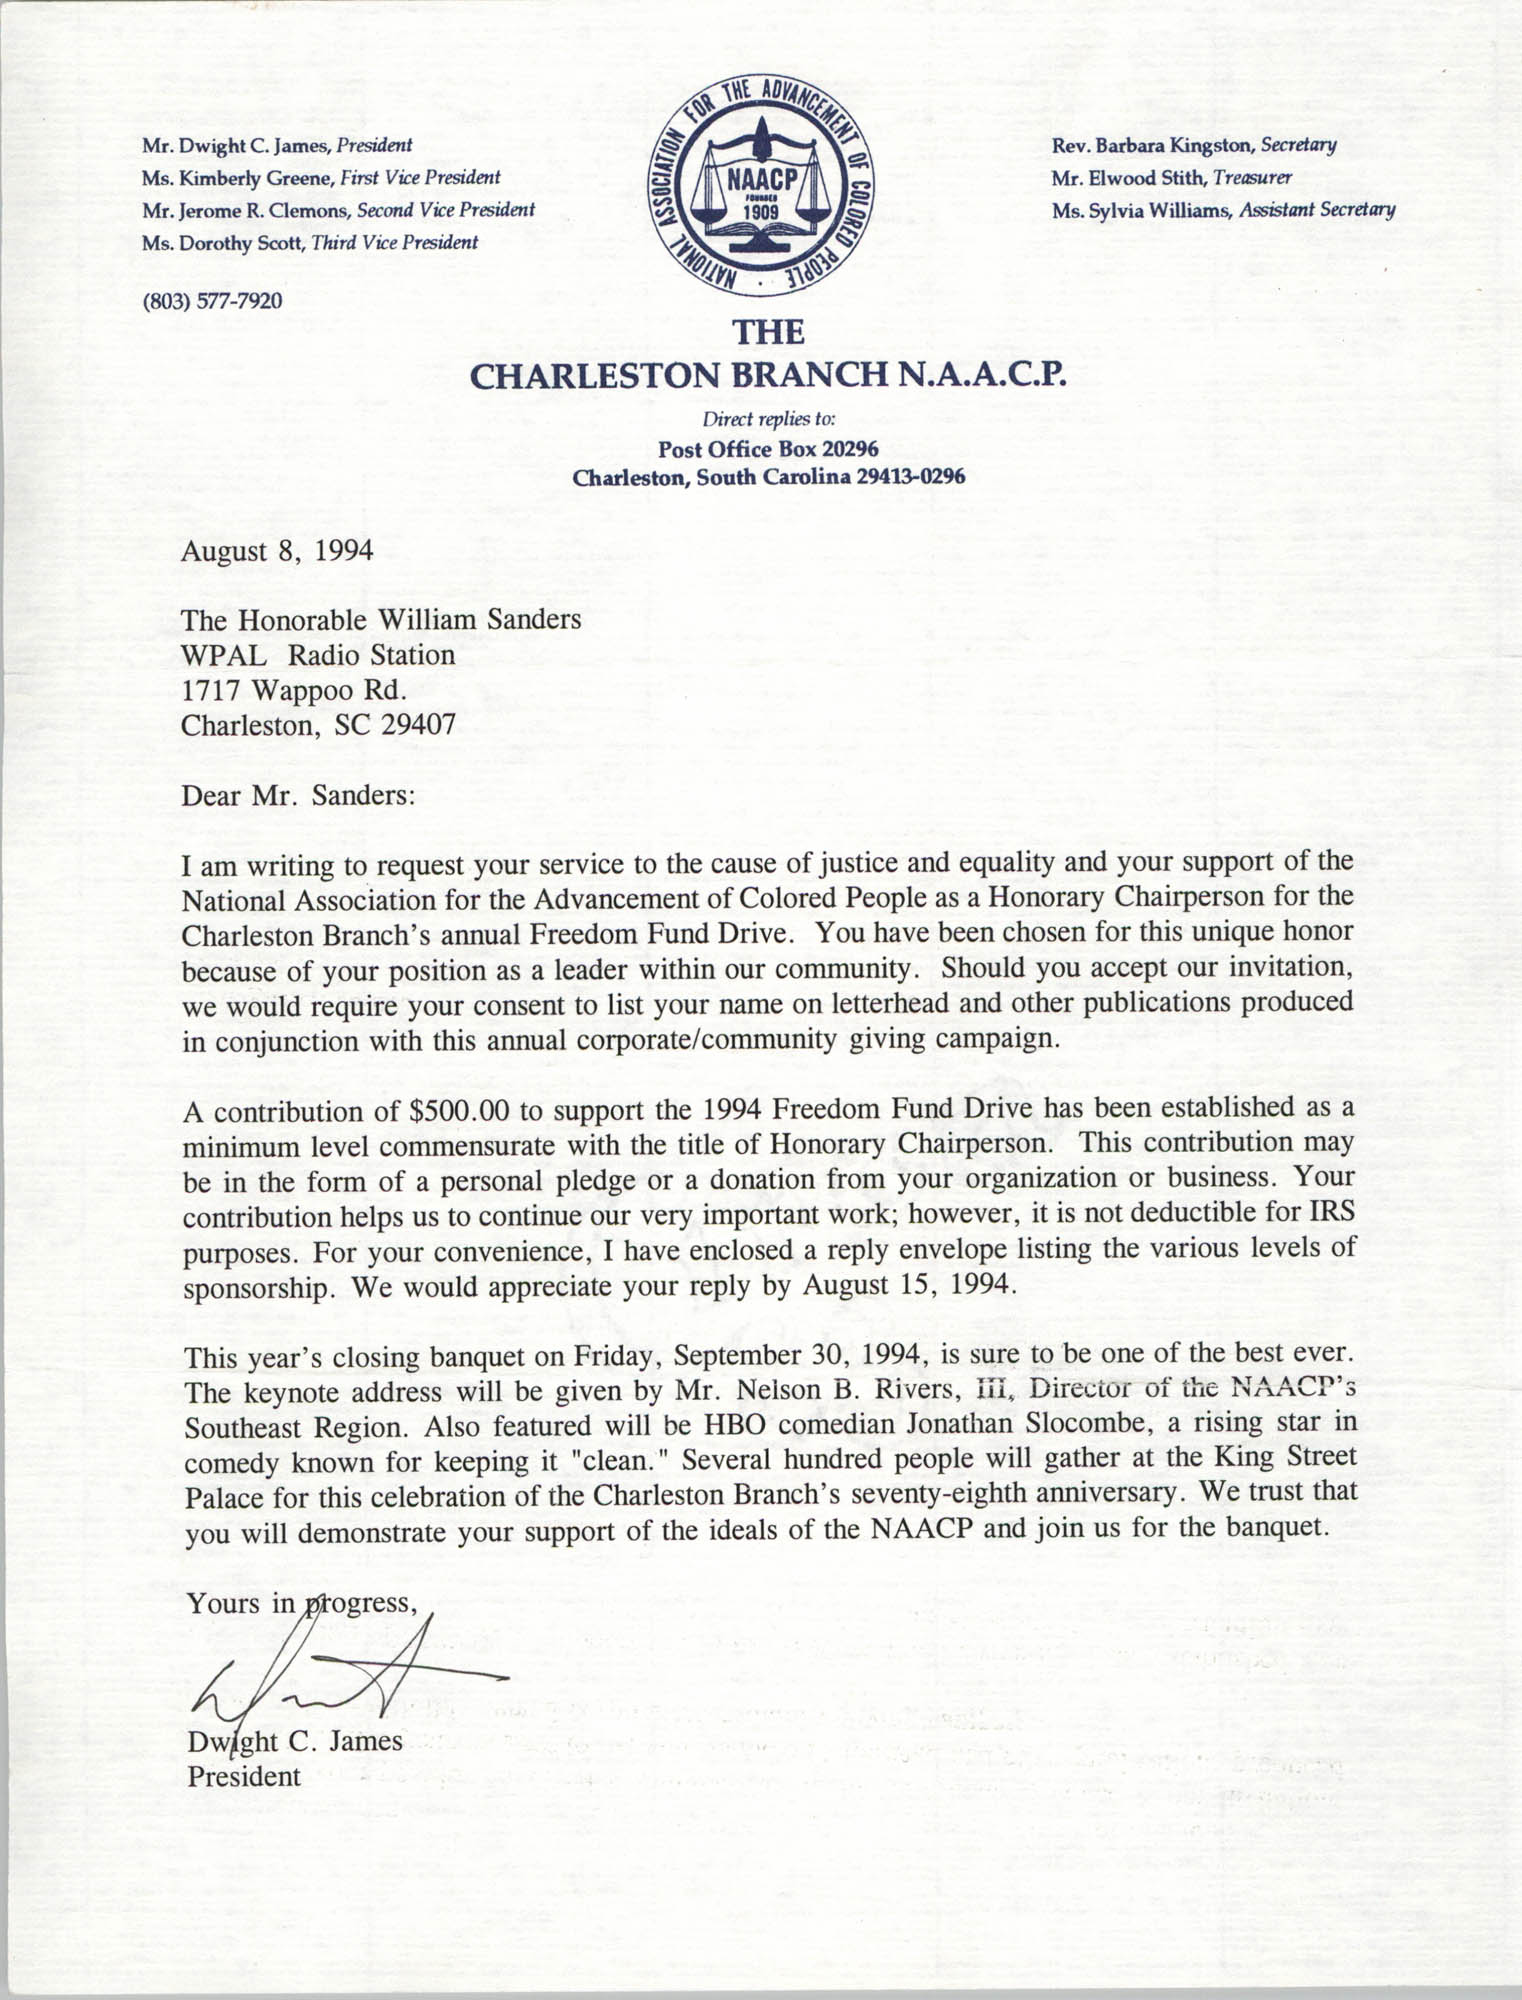 Letter from Dwight C. James to William Saunders, August 8, 1994